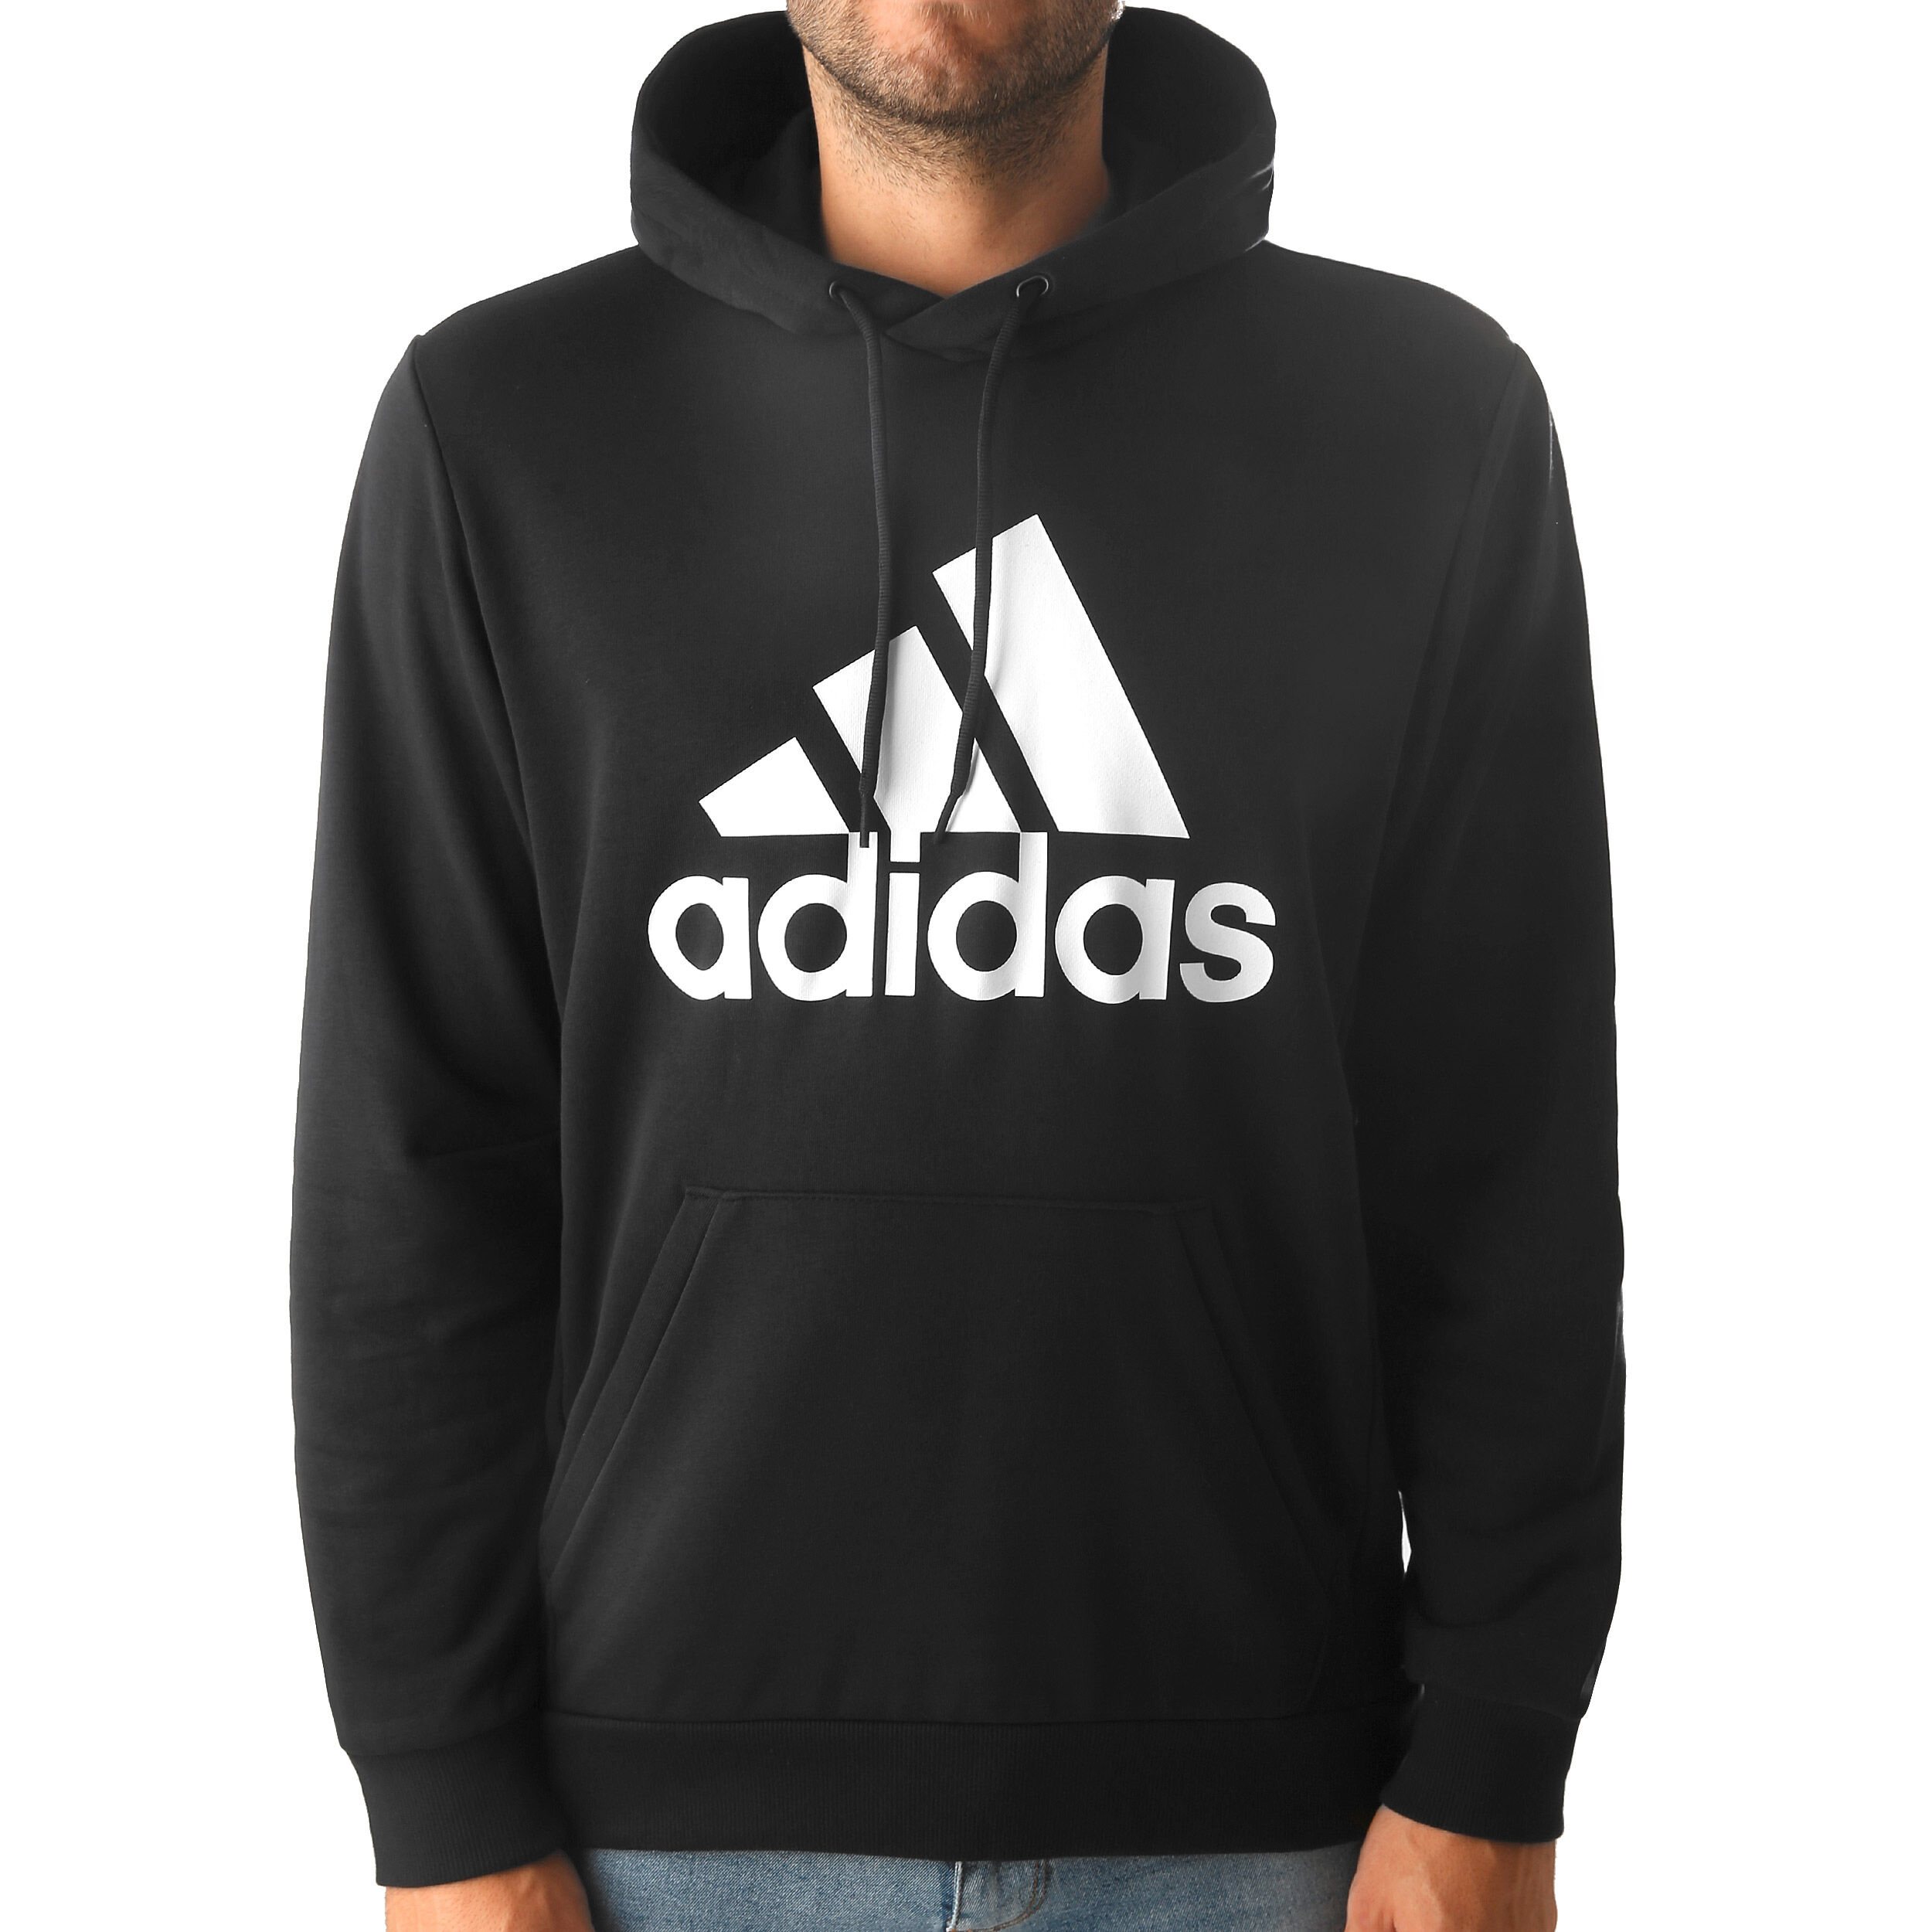 Sweats & Hoodies de adidas acheter en ligne | Tennis Point